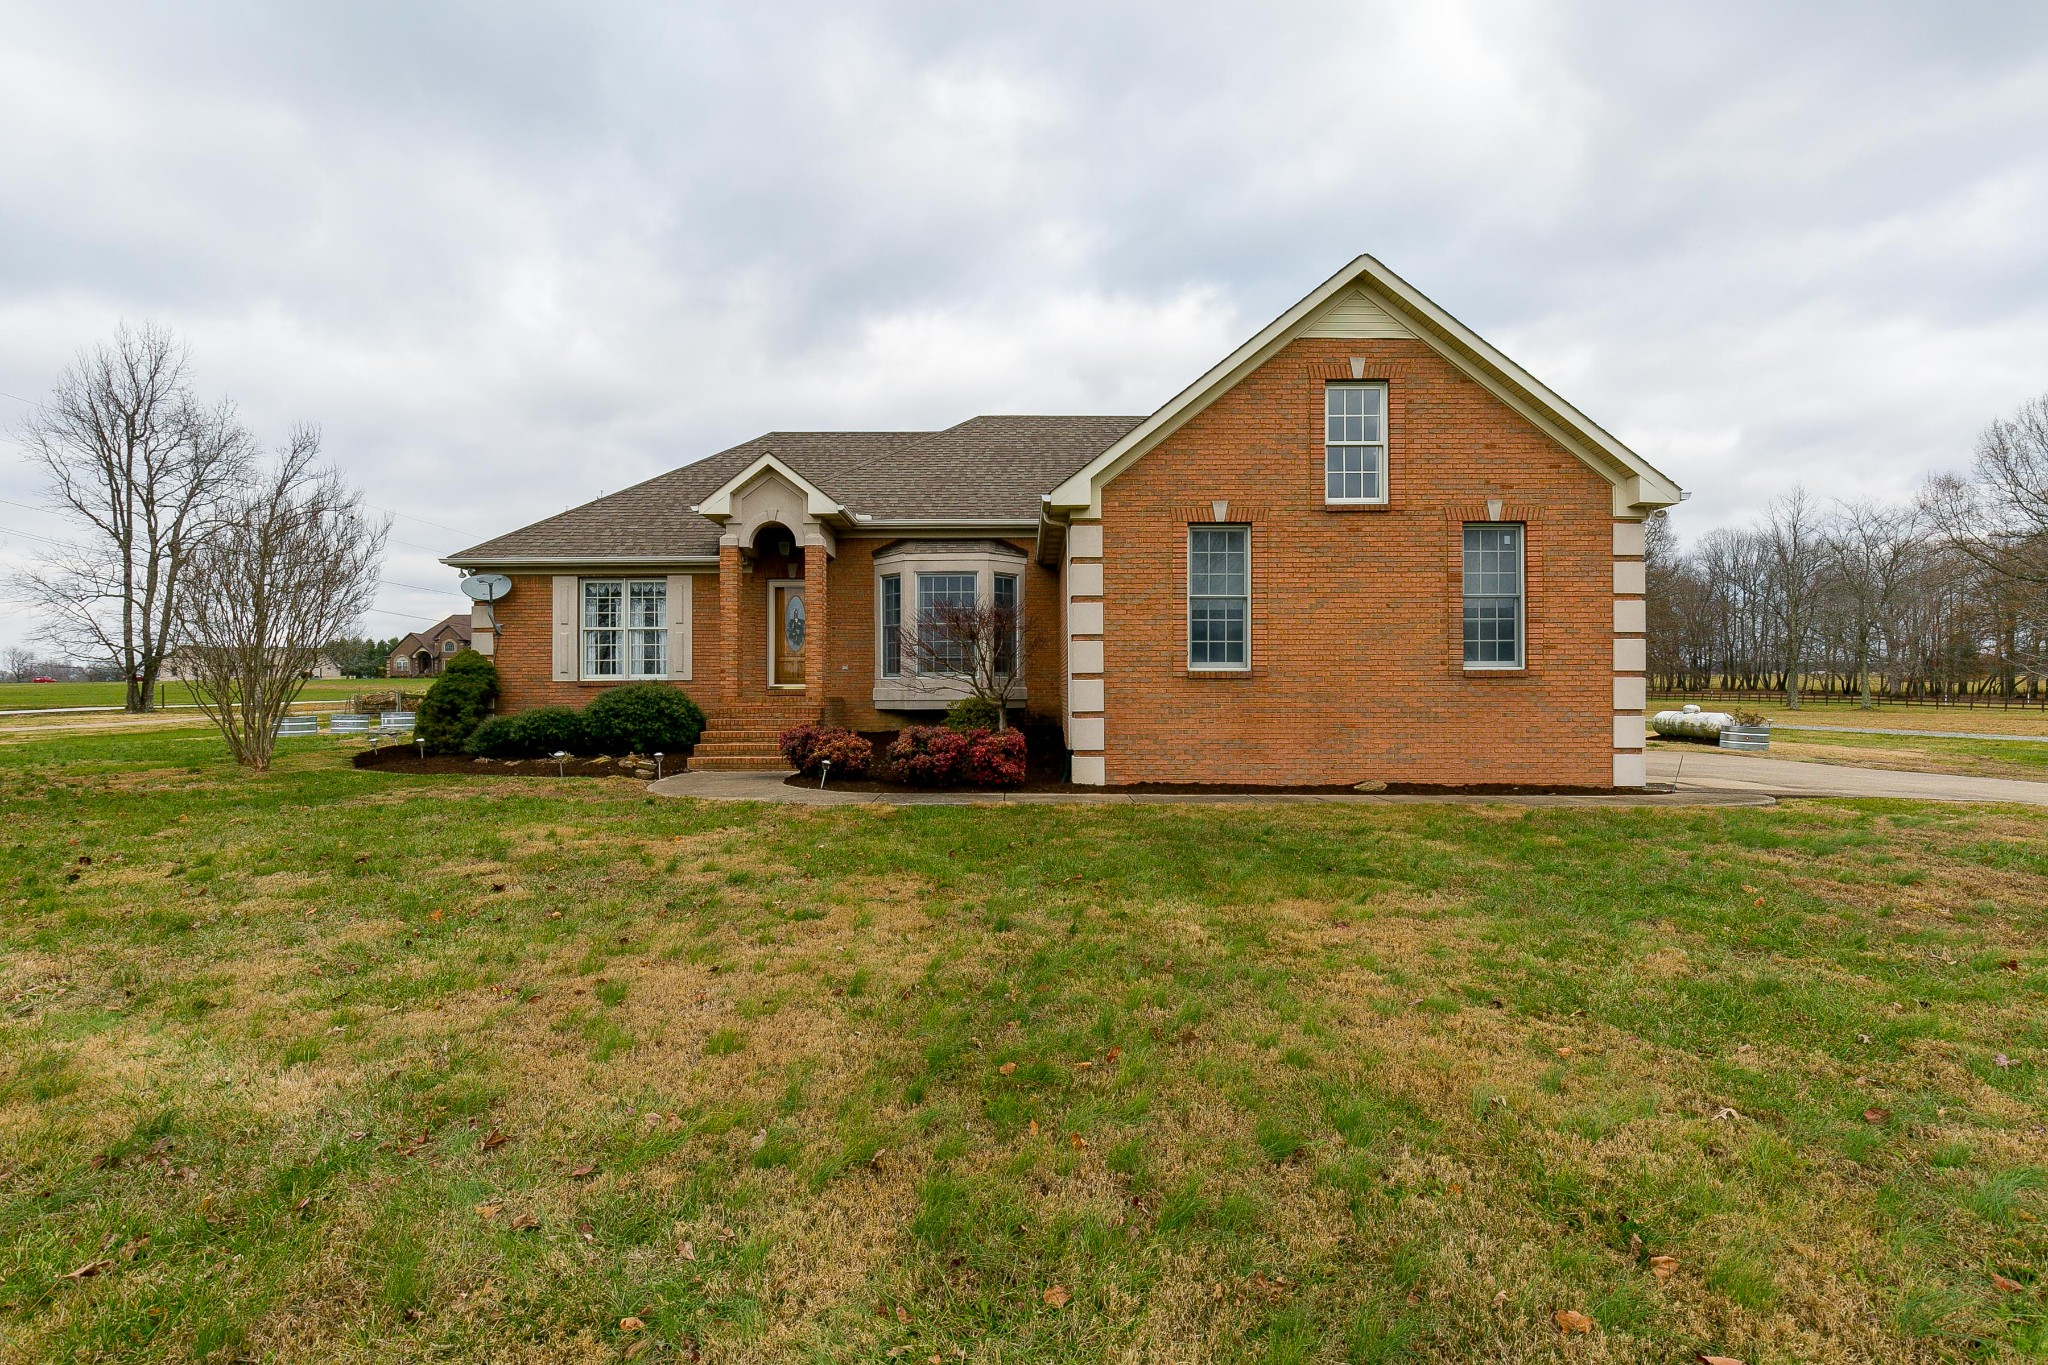 3030 Hwy 25W Property Photo - Cottontown, TN real estate listing